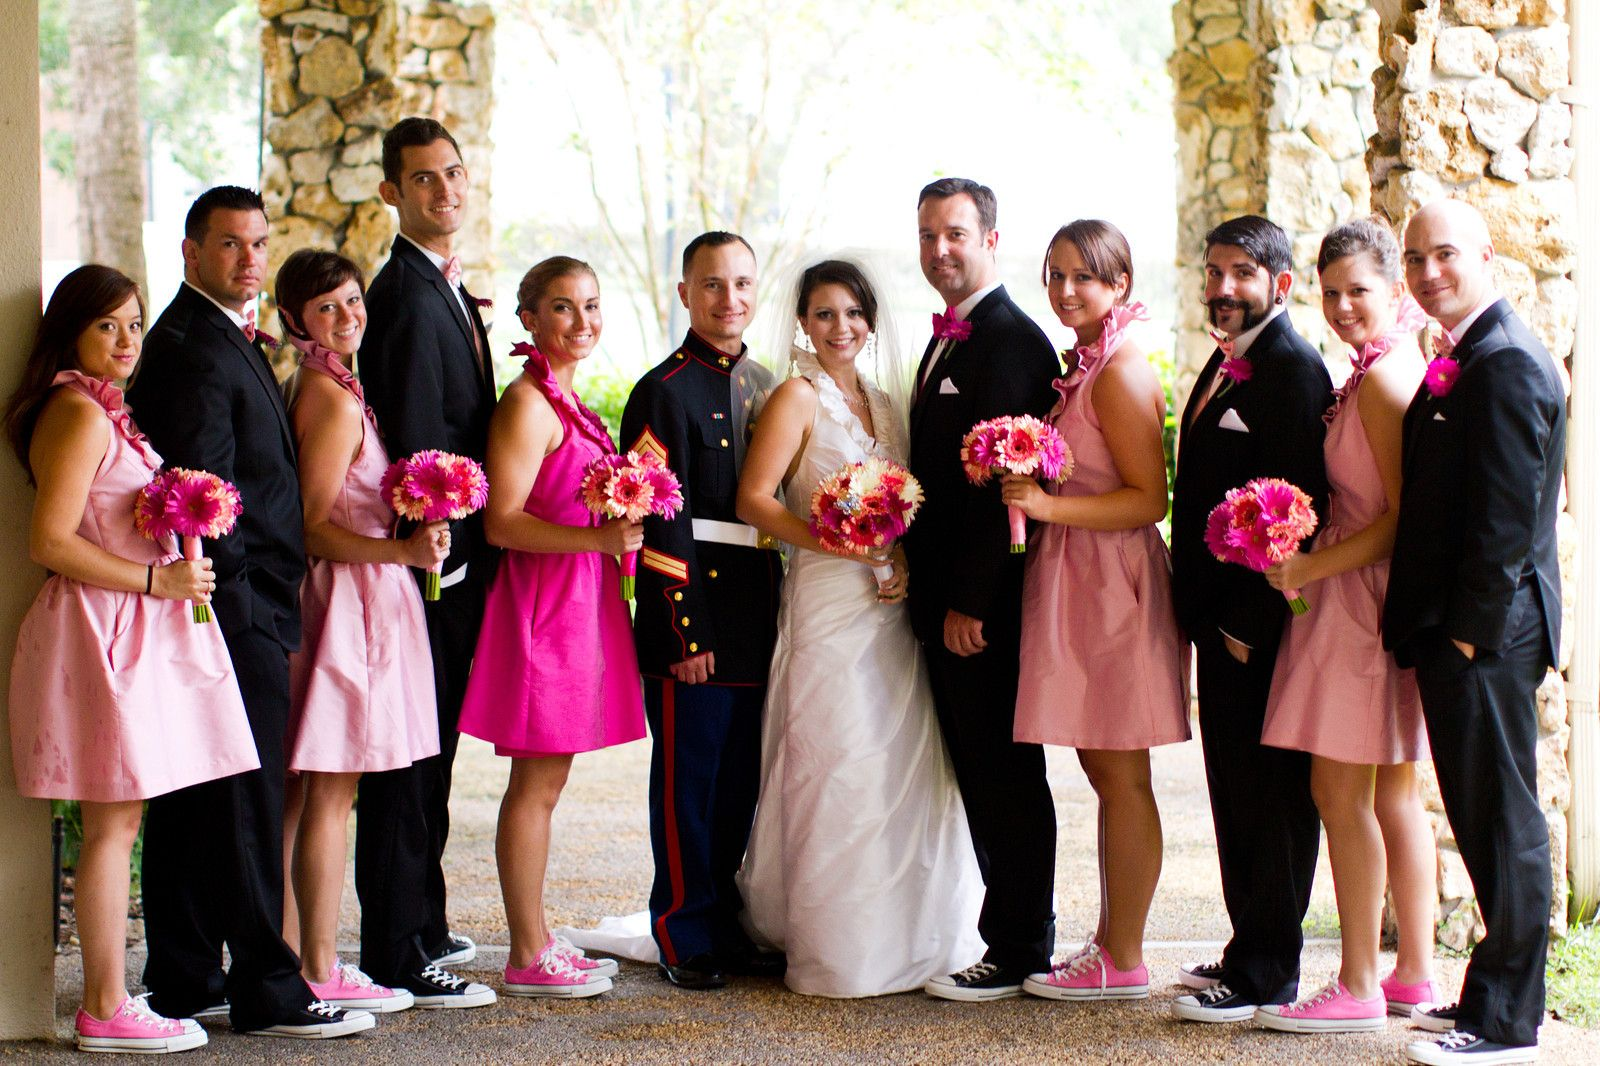 The adults in the wedding party | Tux & chucks | Pinterest | Chuck ...